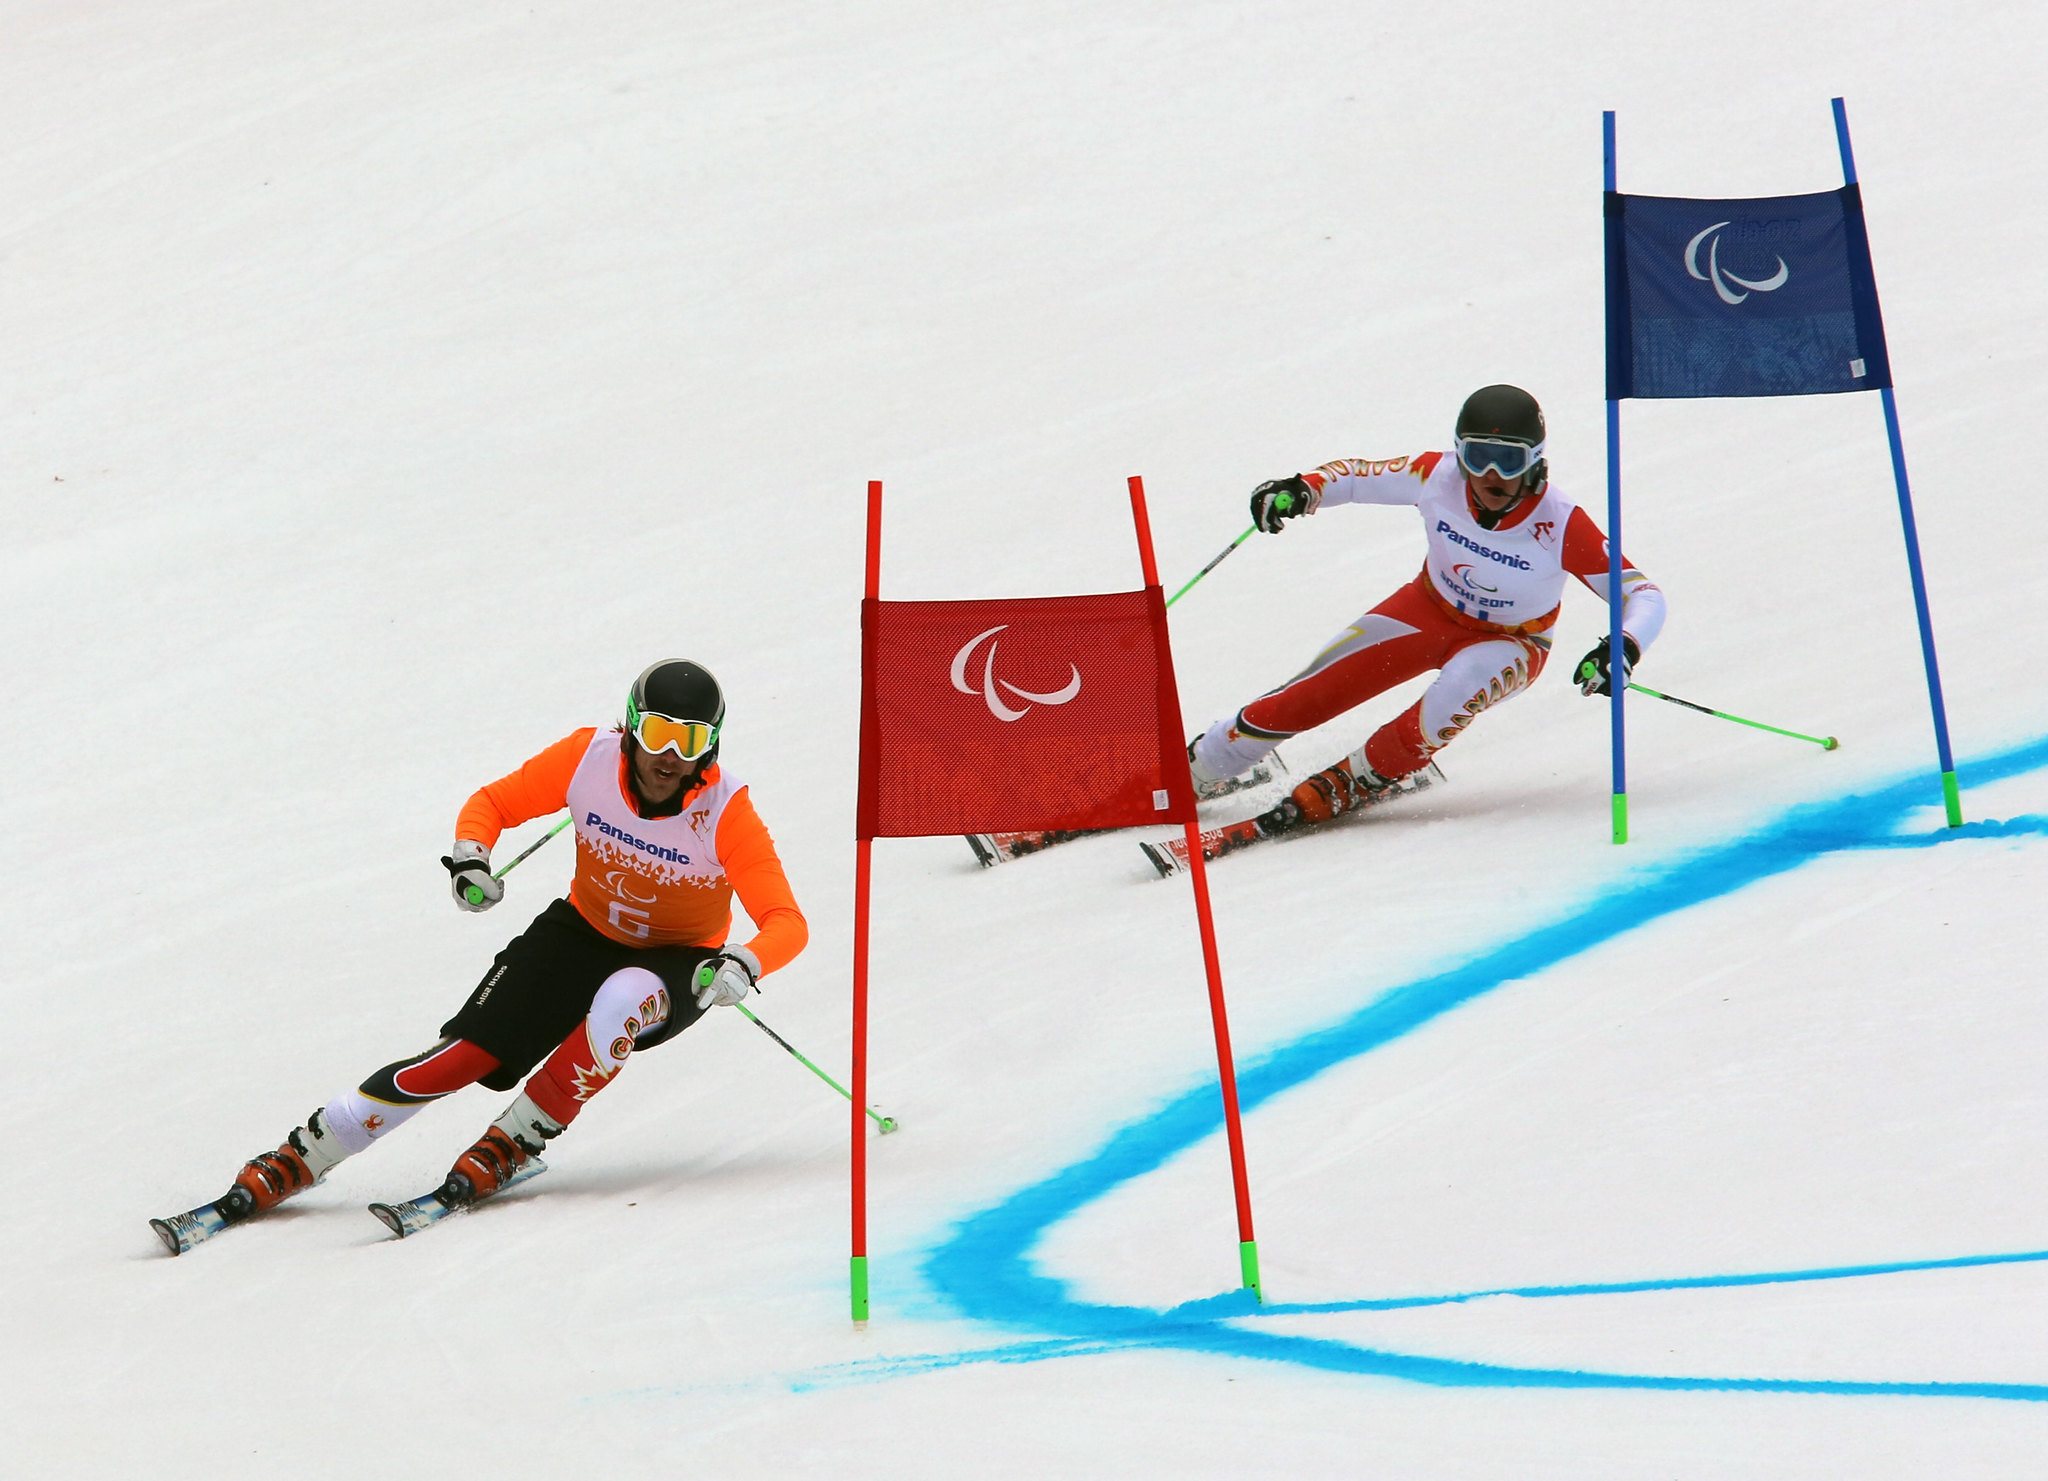 Marcoux and Femy enroute to victory in Sochi, RUS